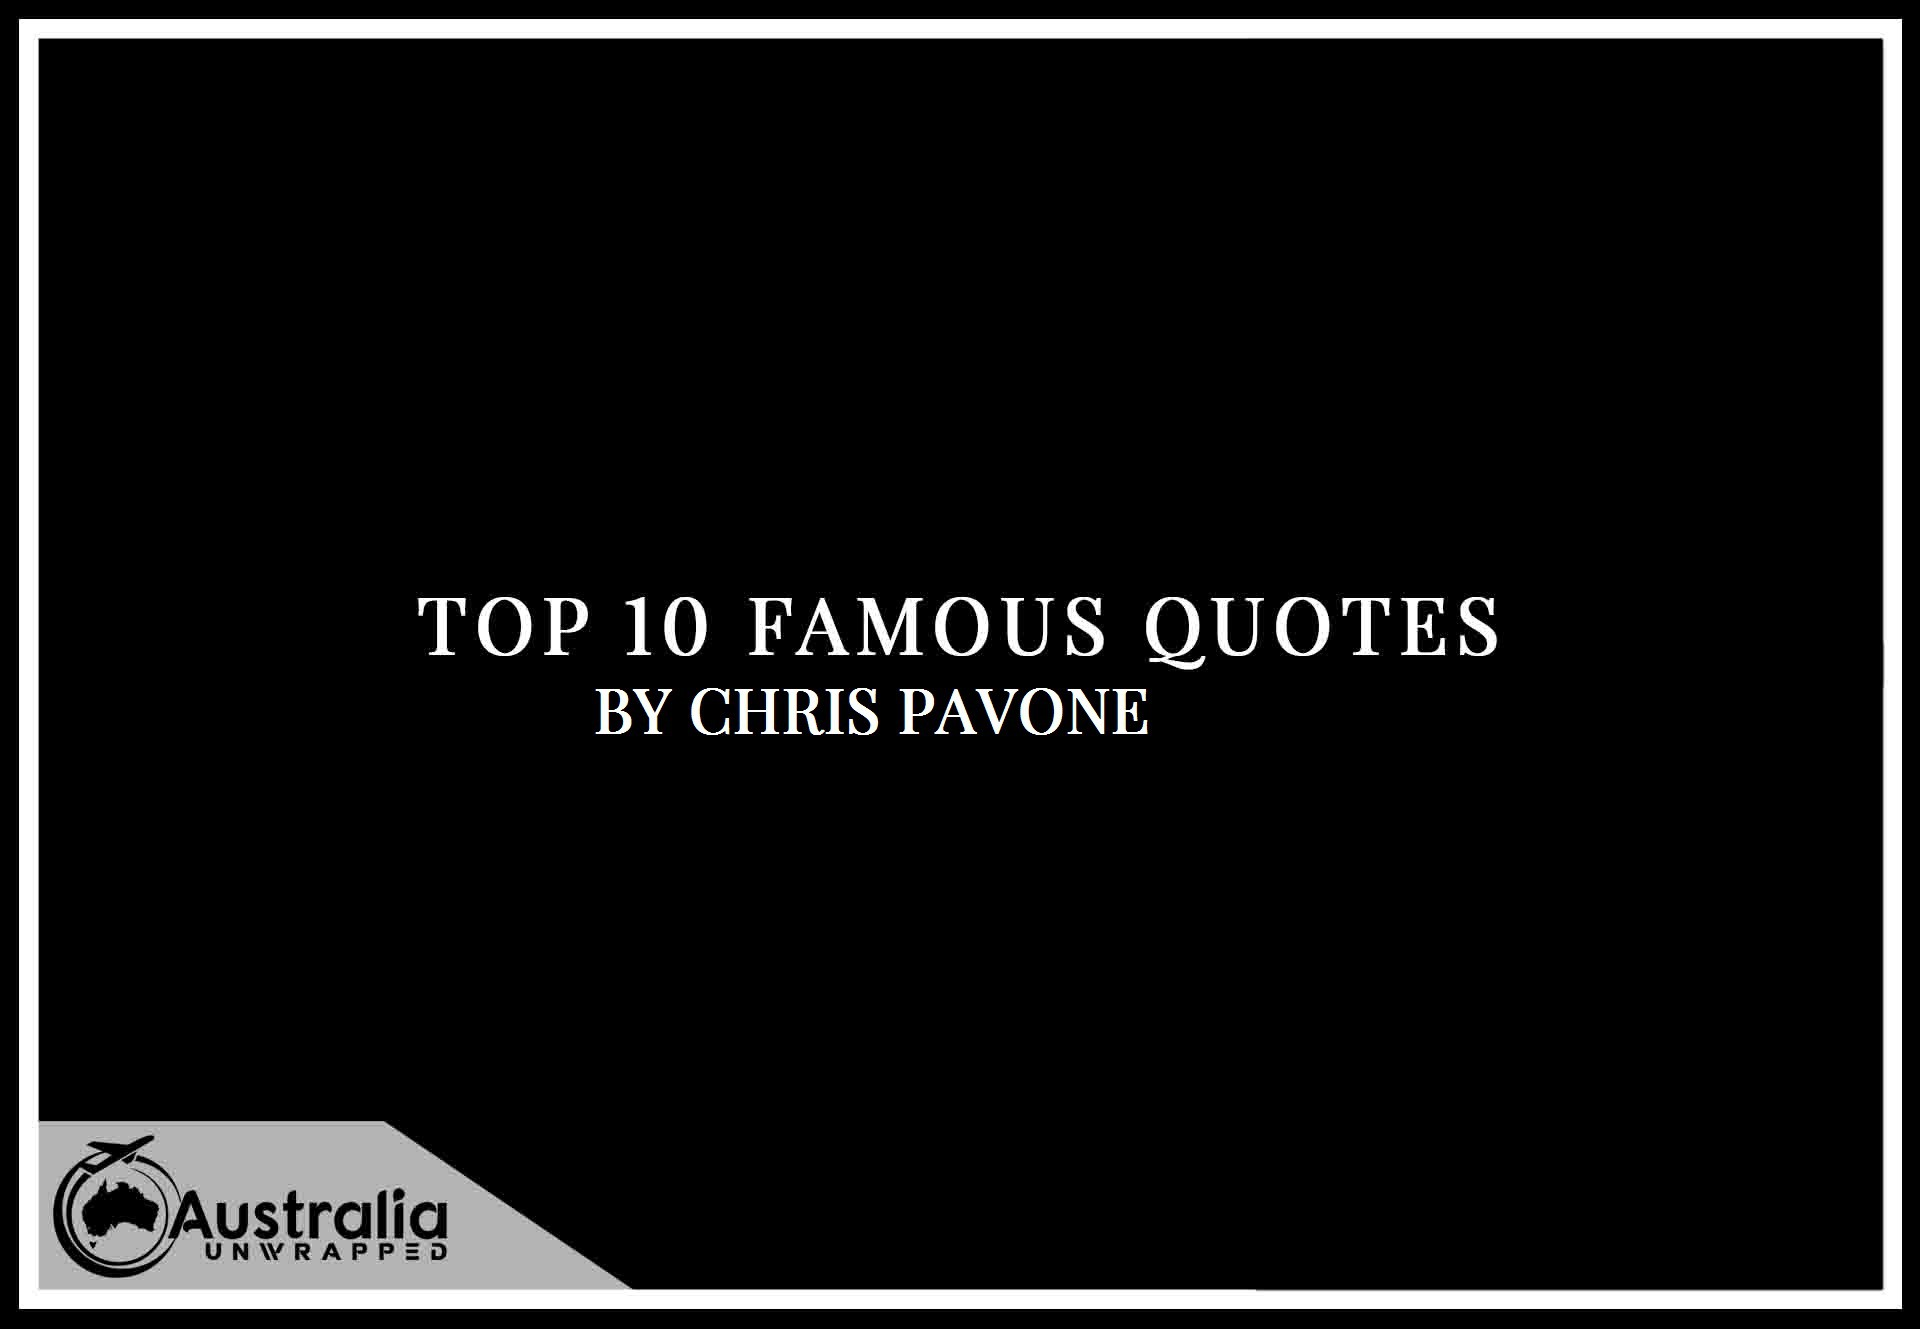 Chris Pavone's Top 10 Popular and Famous Quotes